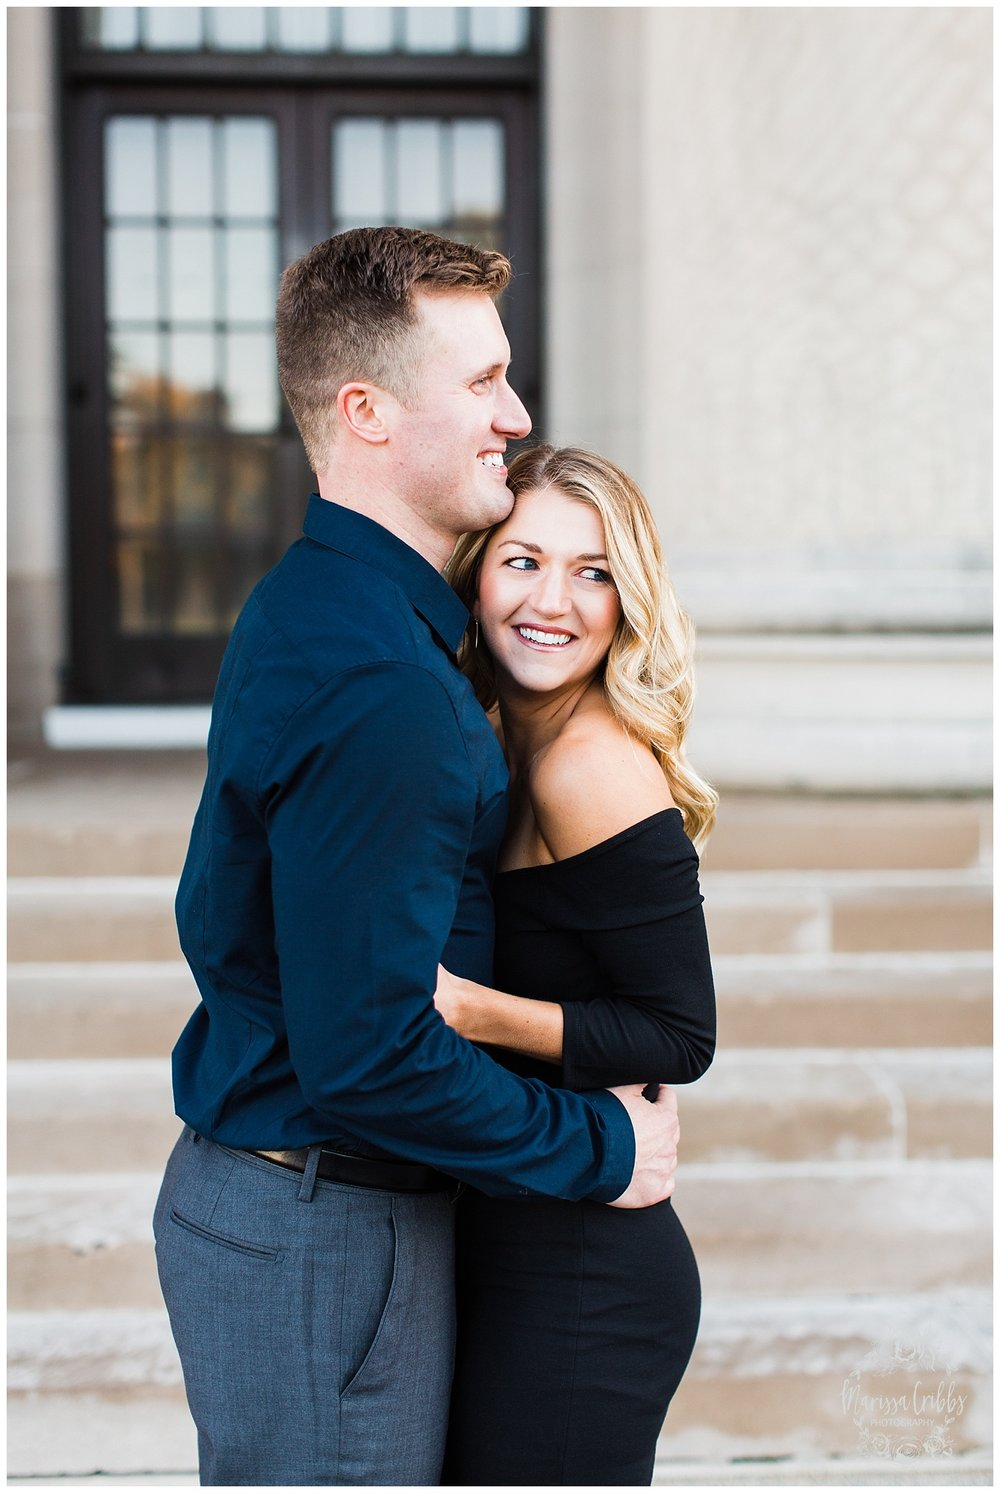 KATE & NATE ENGAGEMENT | NELSON ATKINS | MARISSA CRIBBS PHOTOGRAPHY_3582.jpg